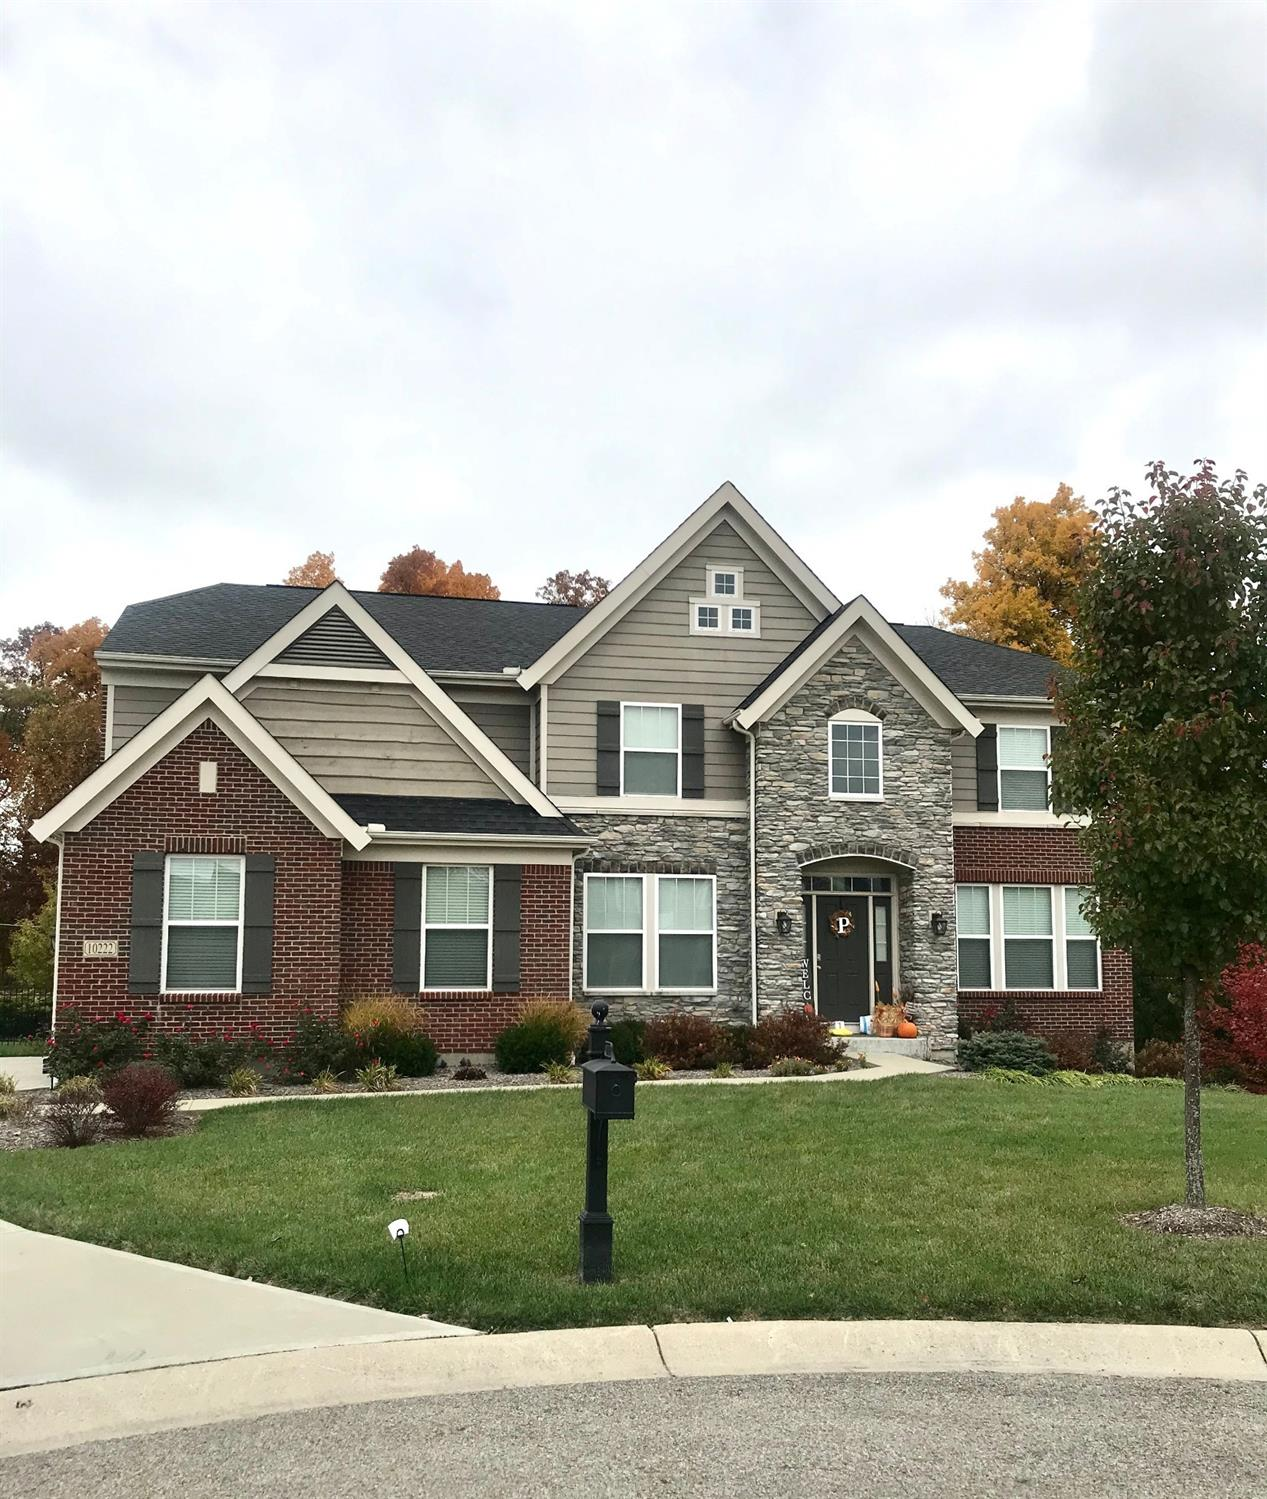 Property for sale at 10222 Elmfield Drive, Symmes Twp,  Ohio 45140